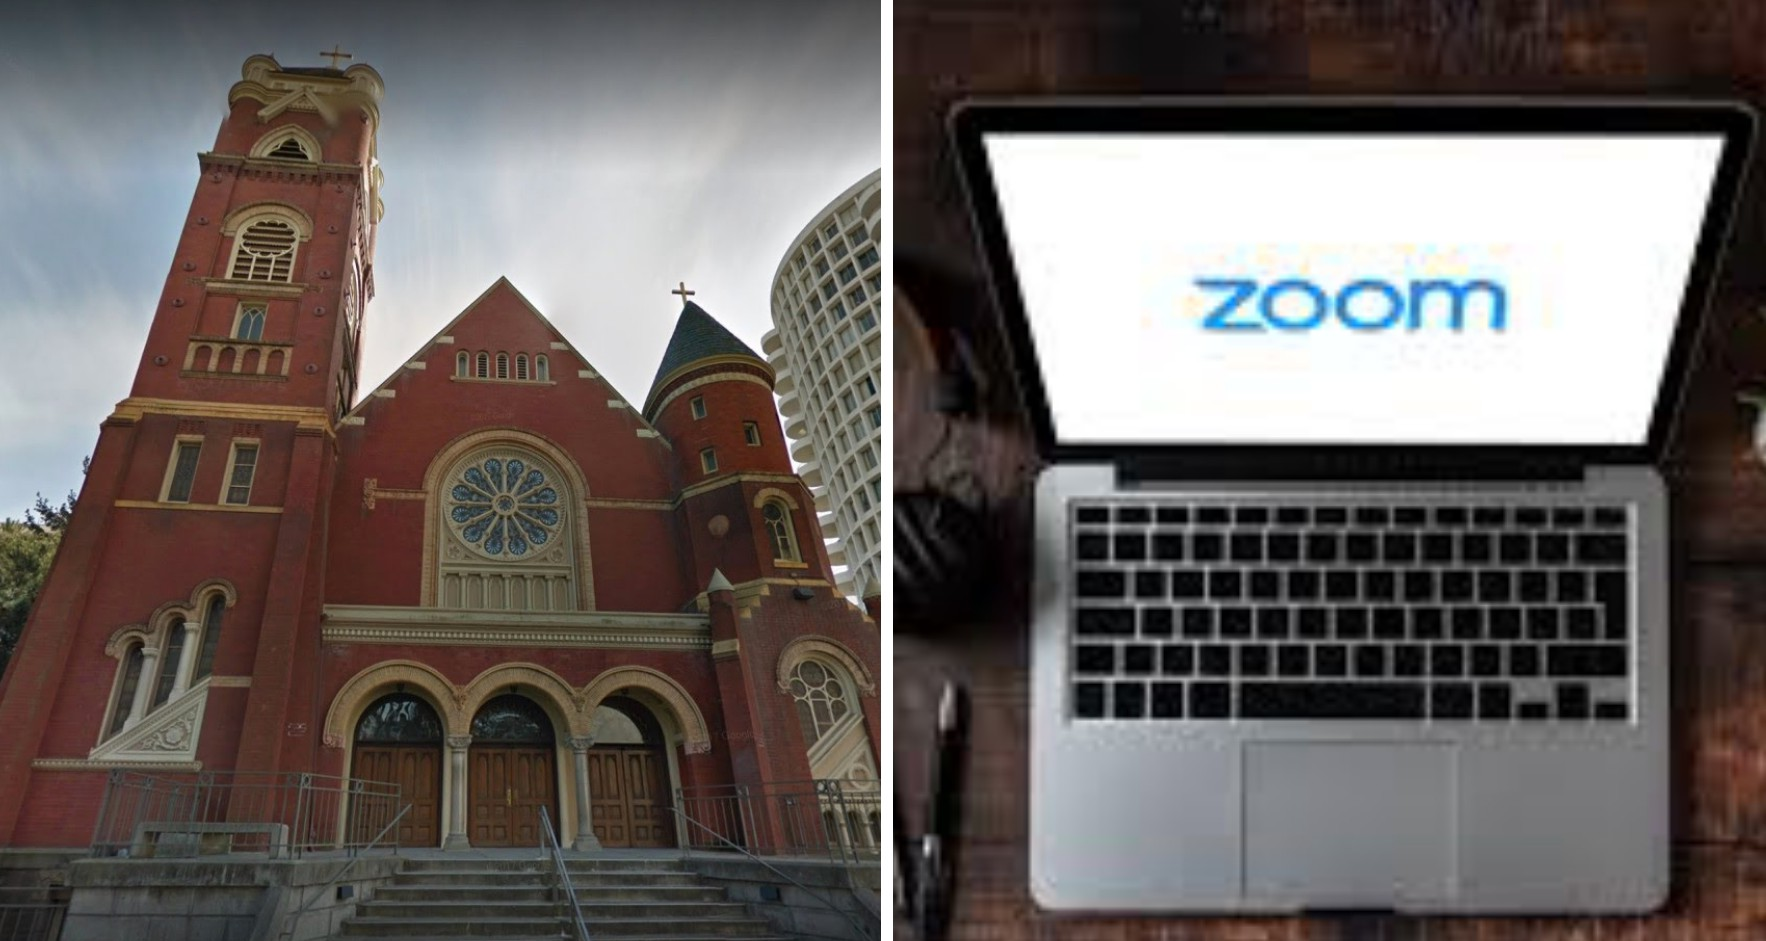 Church Sues Zoom After Hacker Streams Porn During Bible Study